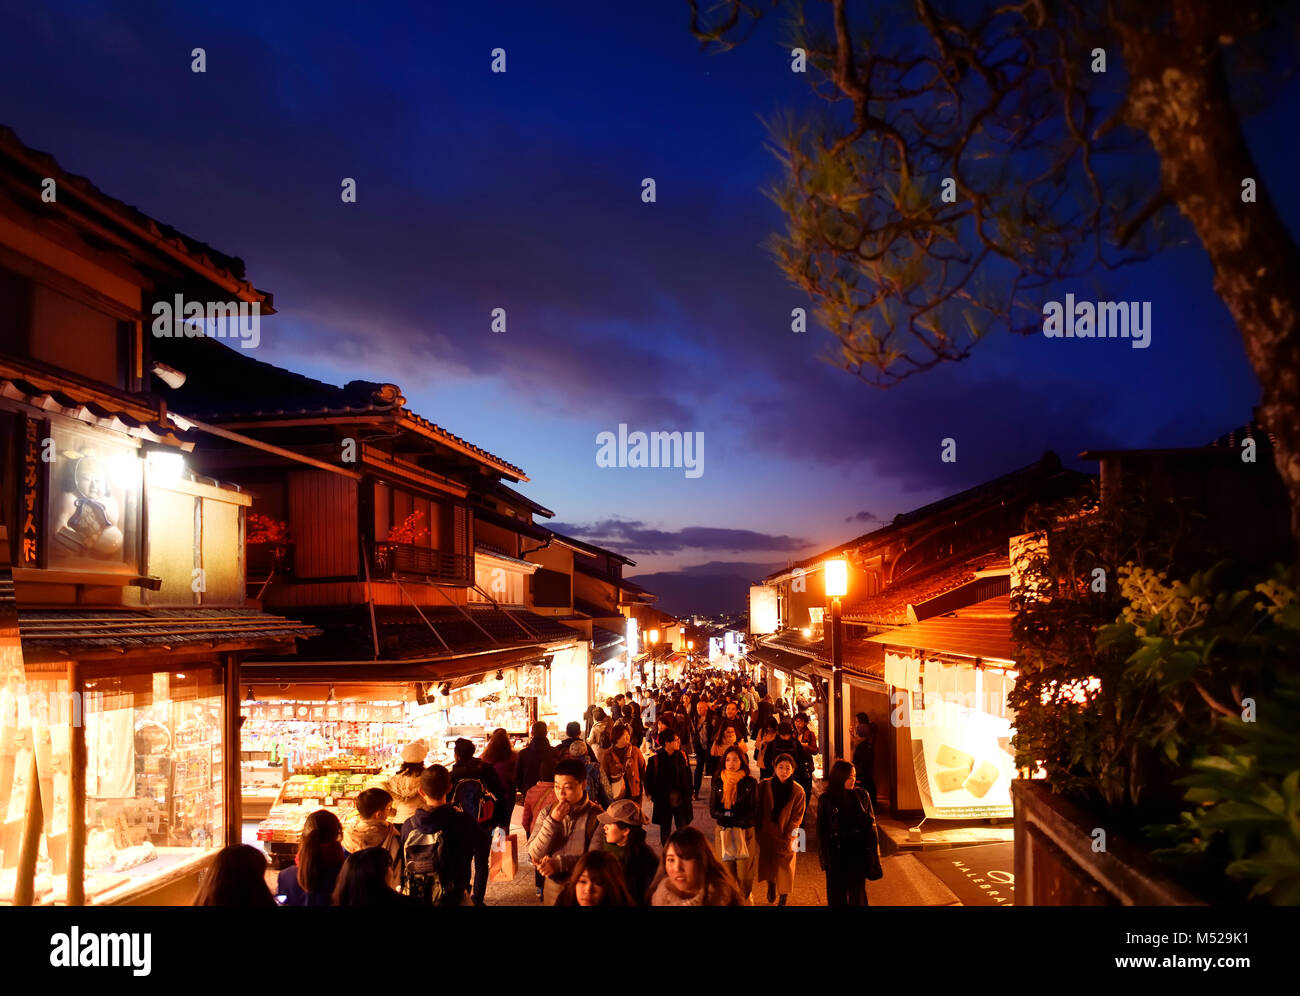 Matsubara dori street in Kyoto at night full of people and bright lights near Kiyomizu-dera temple. Higashiyama, - Stock Image